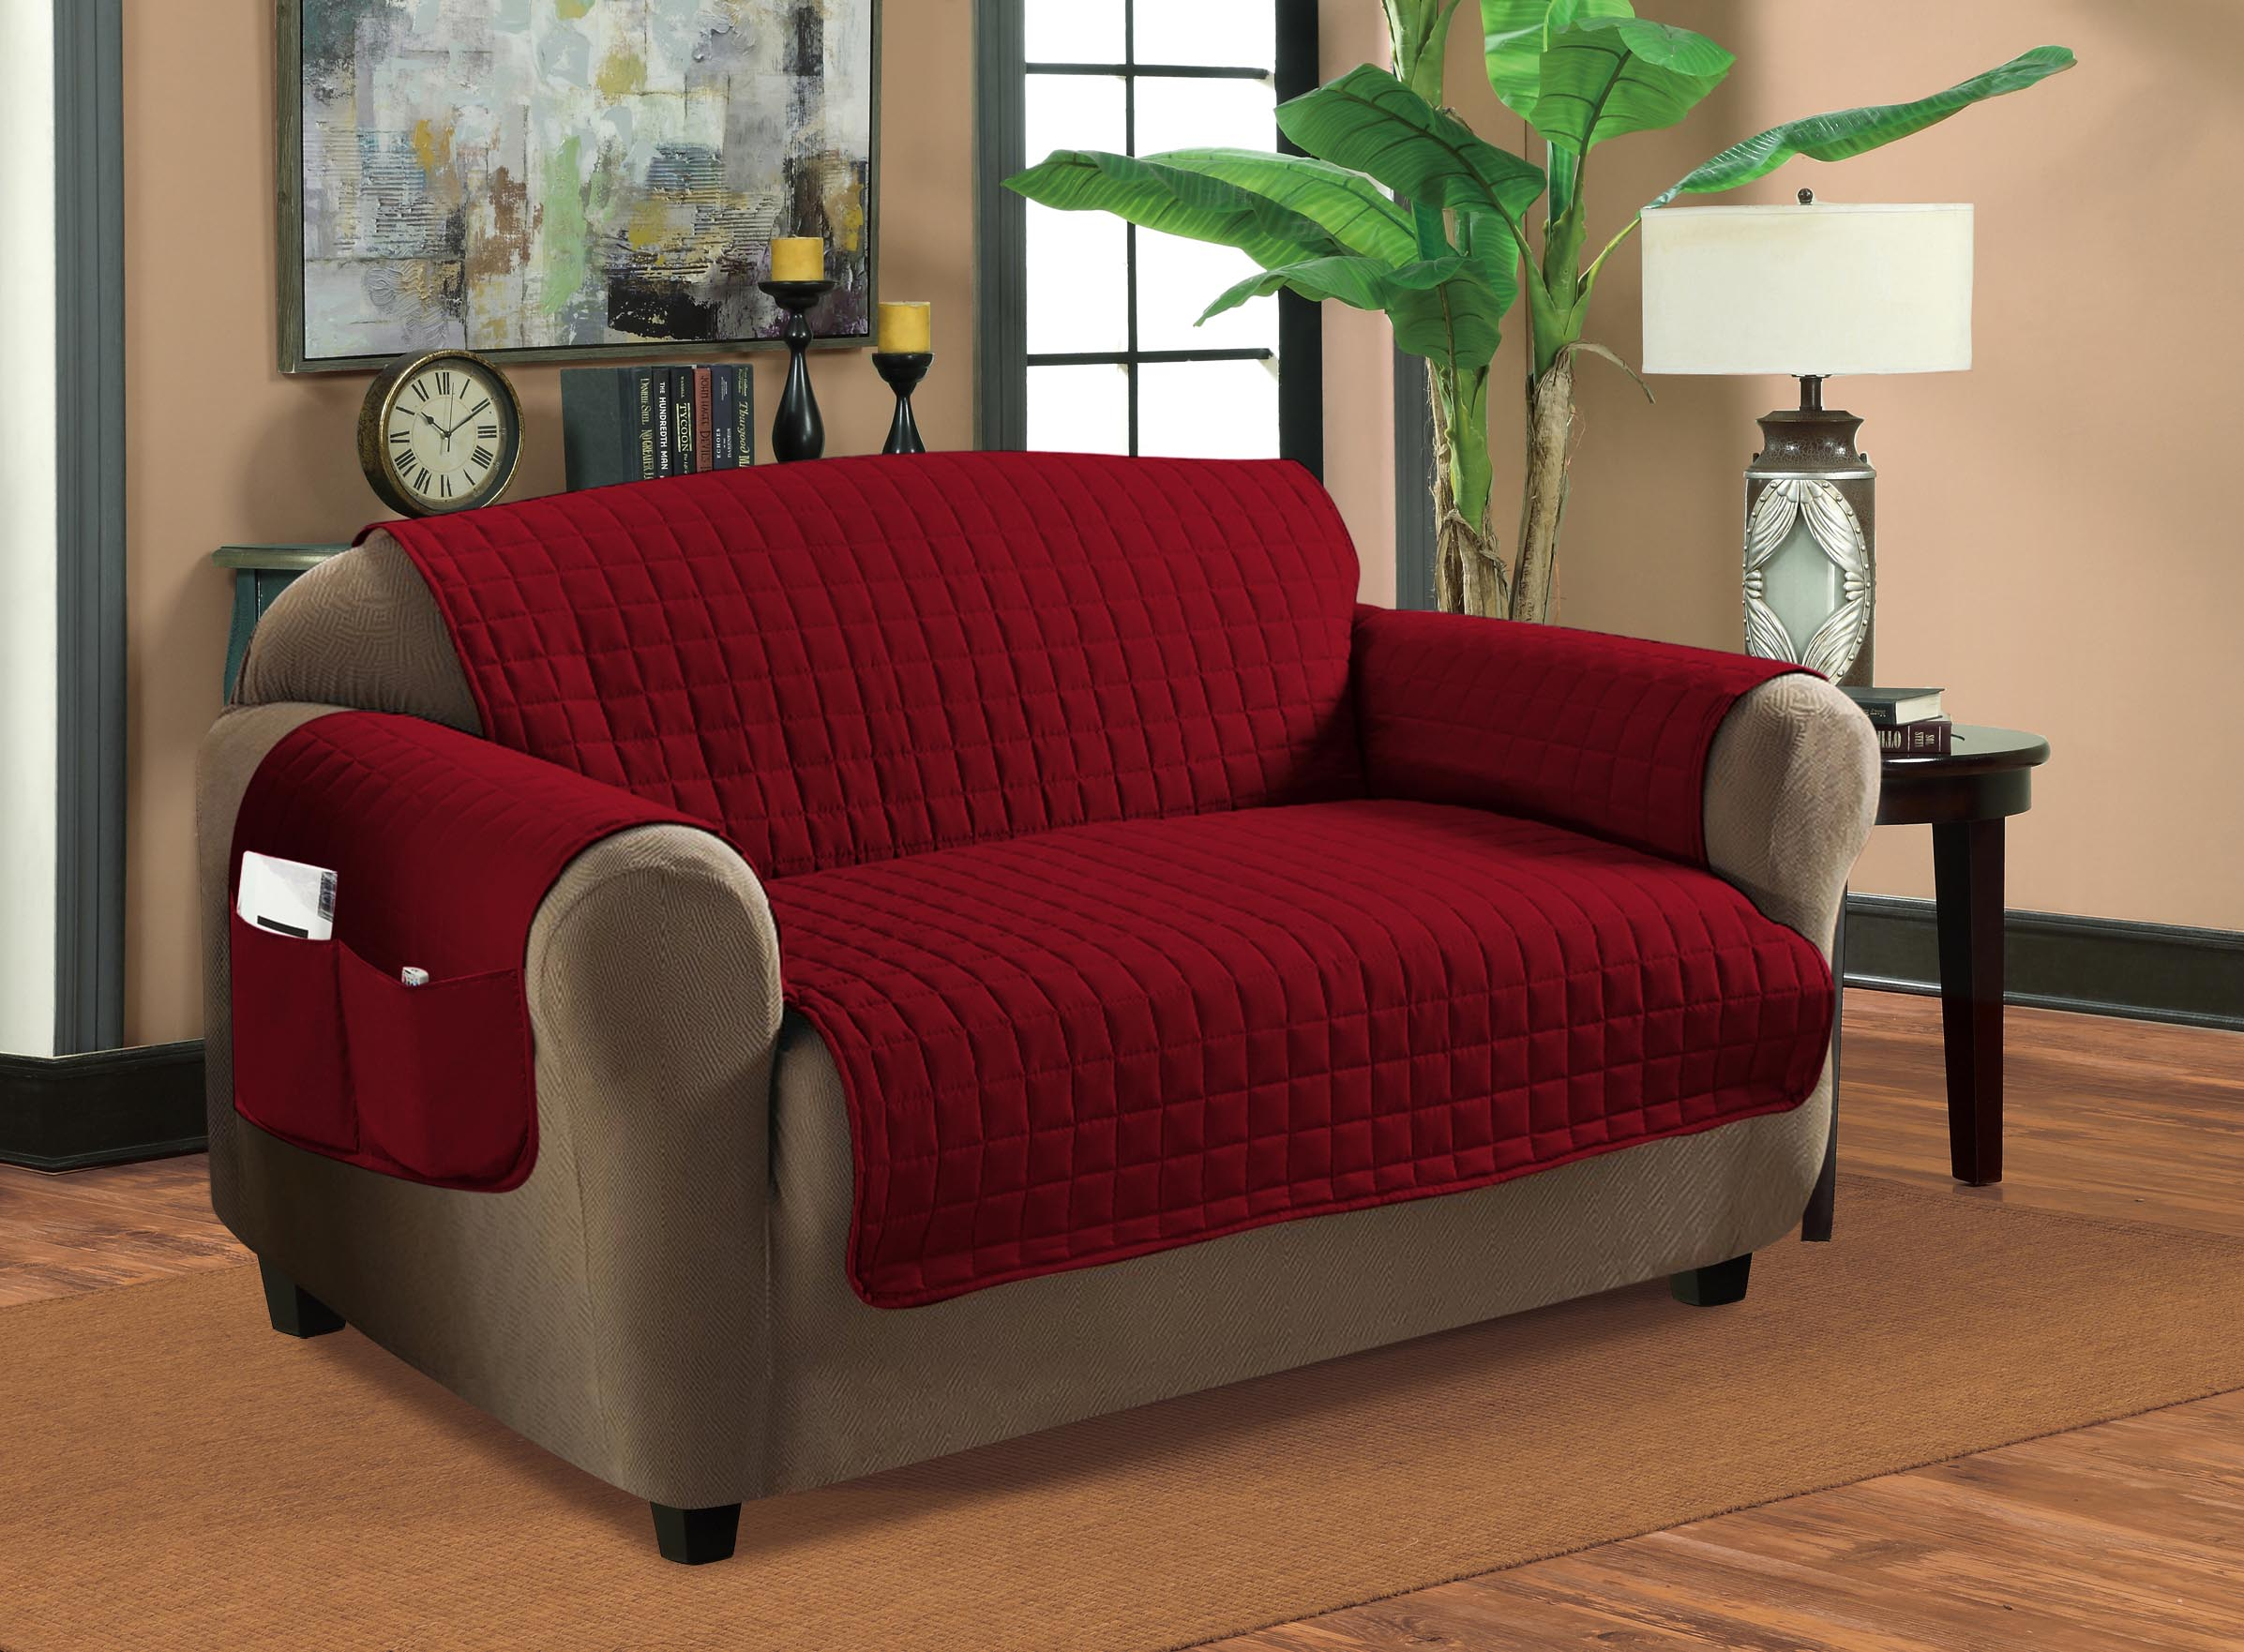 Home sweet home furniture protectors quilted sofa cover for Home sweet home sofa